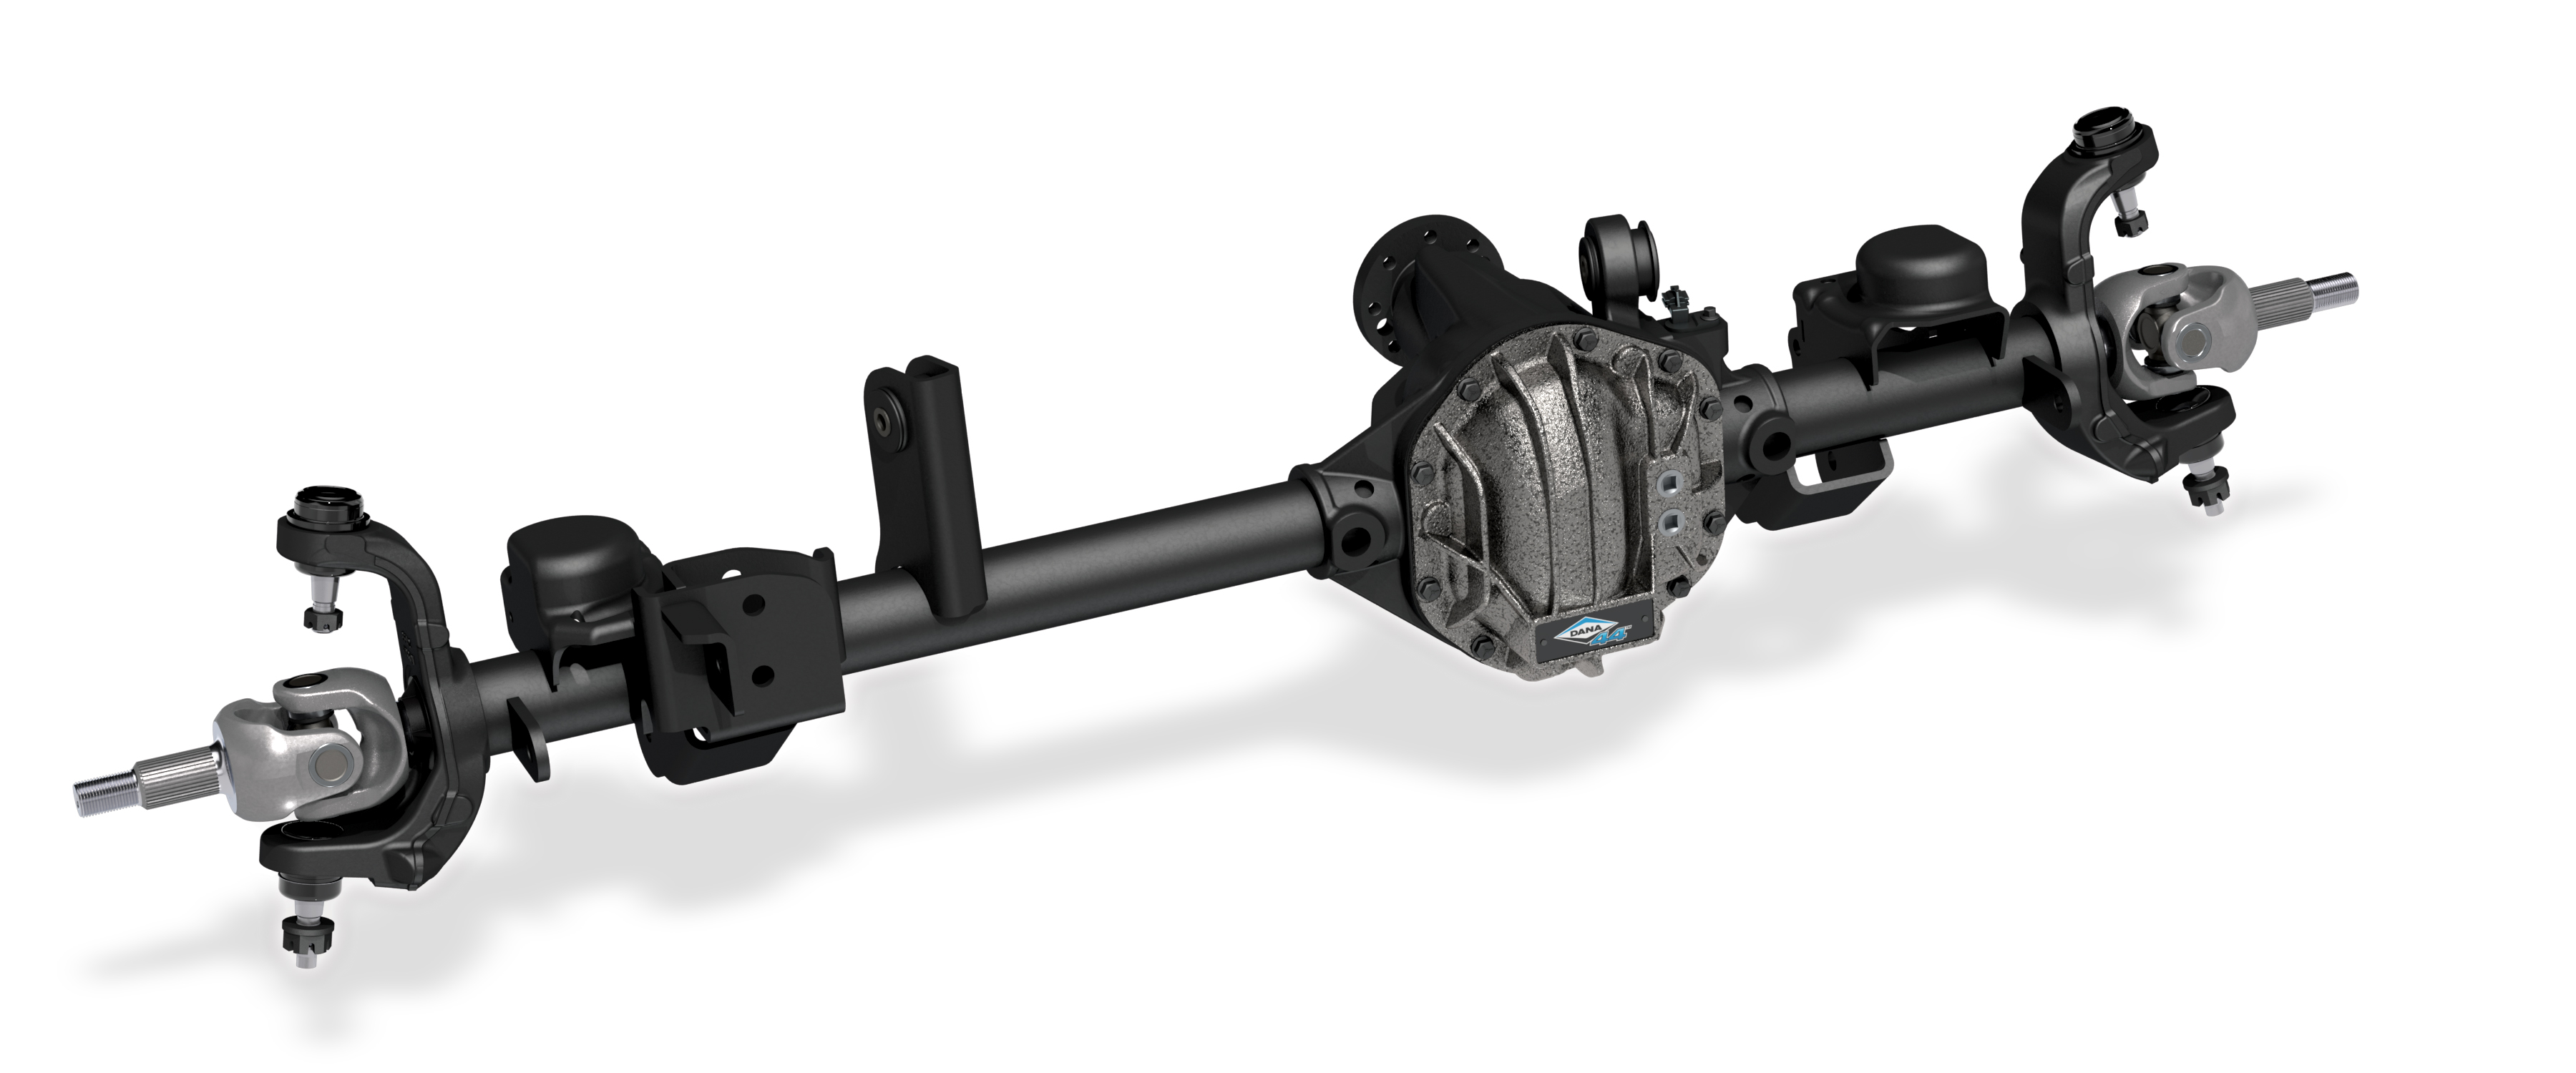 Ultimate Dana 44 Front Axles For The Jeep Wrangler Jk